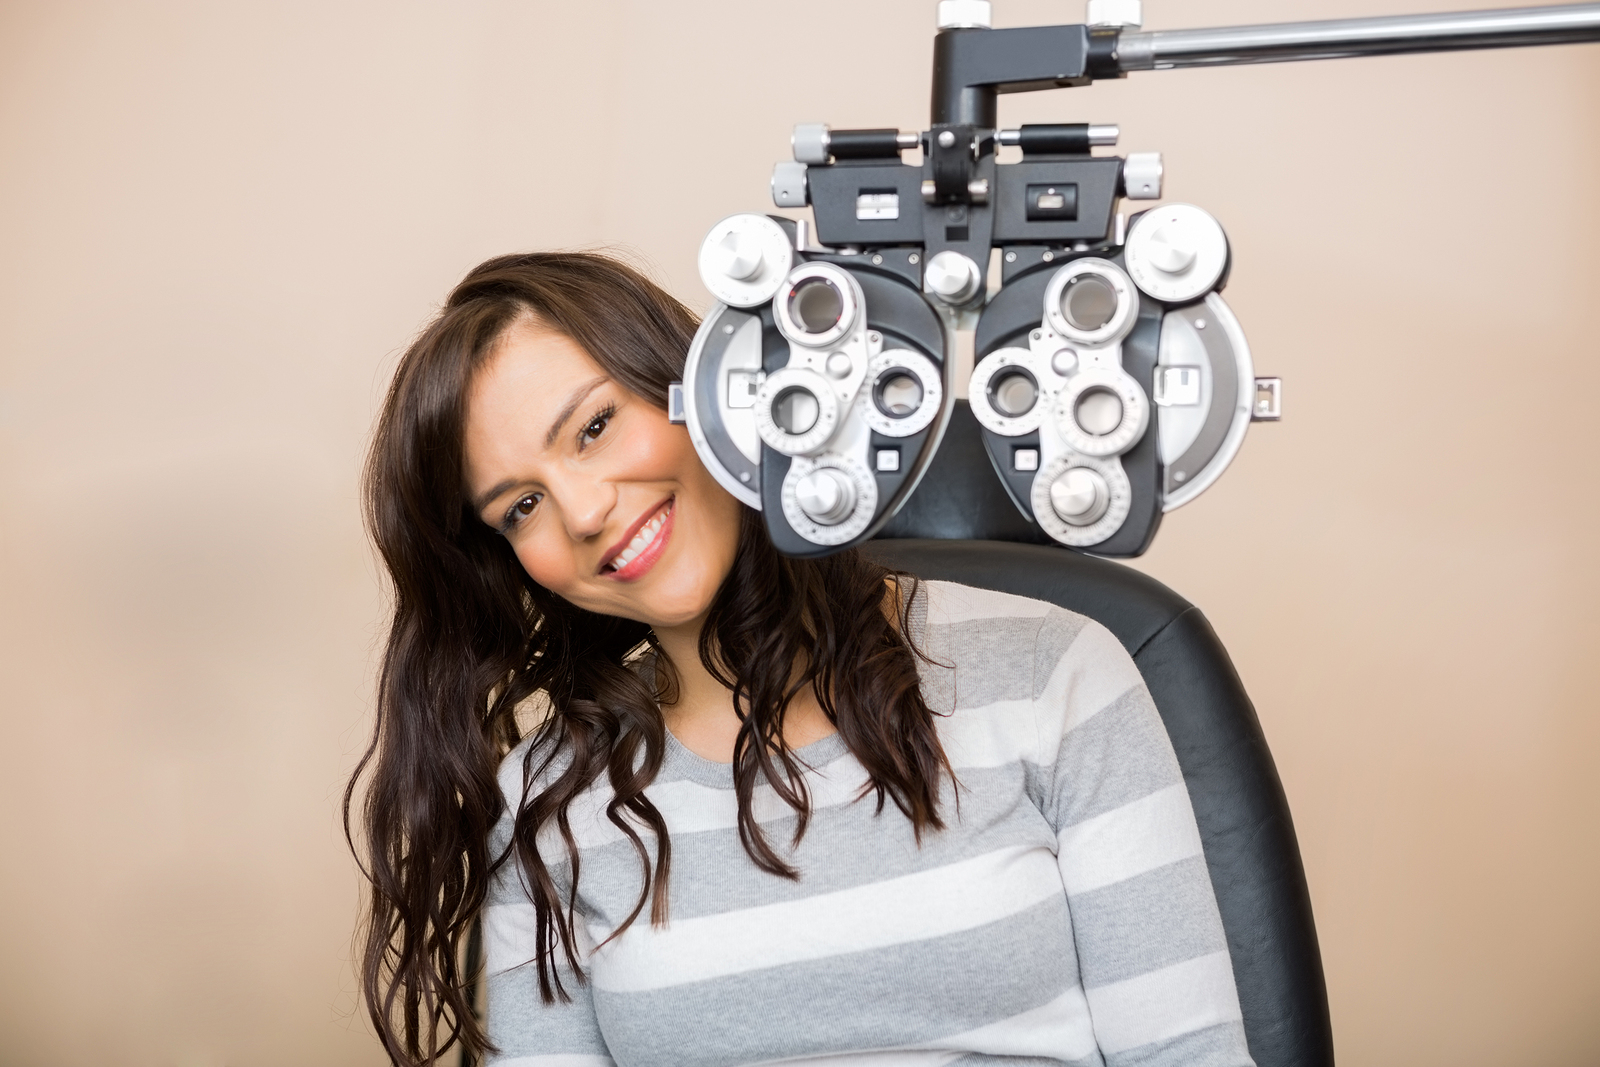 Eye & vision exams are a critical part of maintaining your eye health. Come see our ophthalmologist in Phoenix for a comprehensive eye exam; call us today!